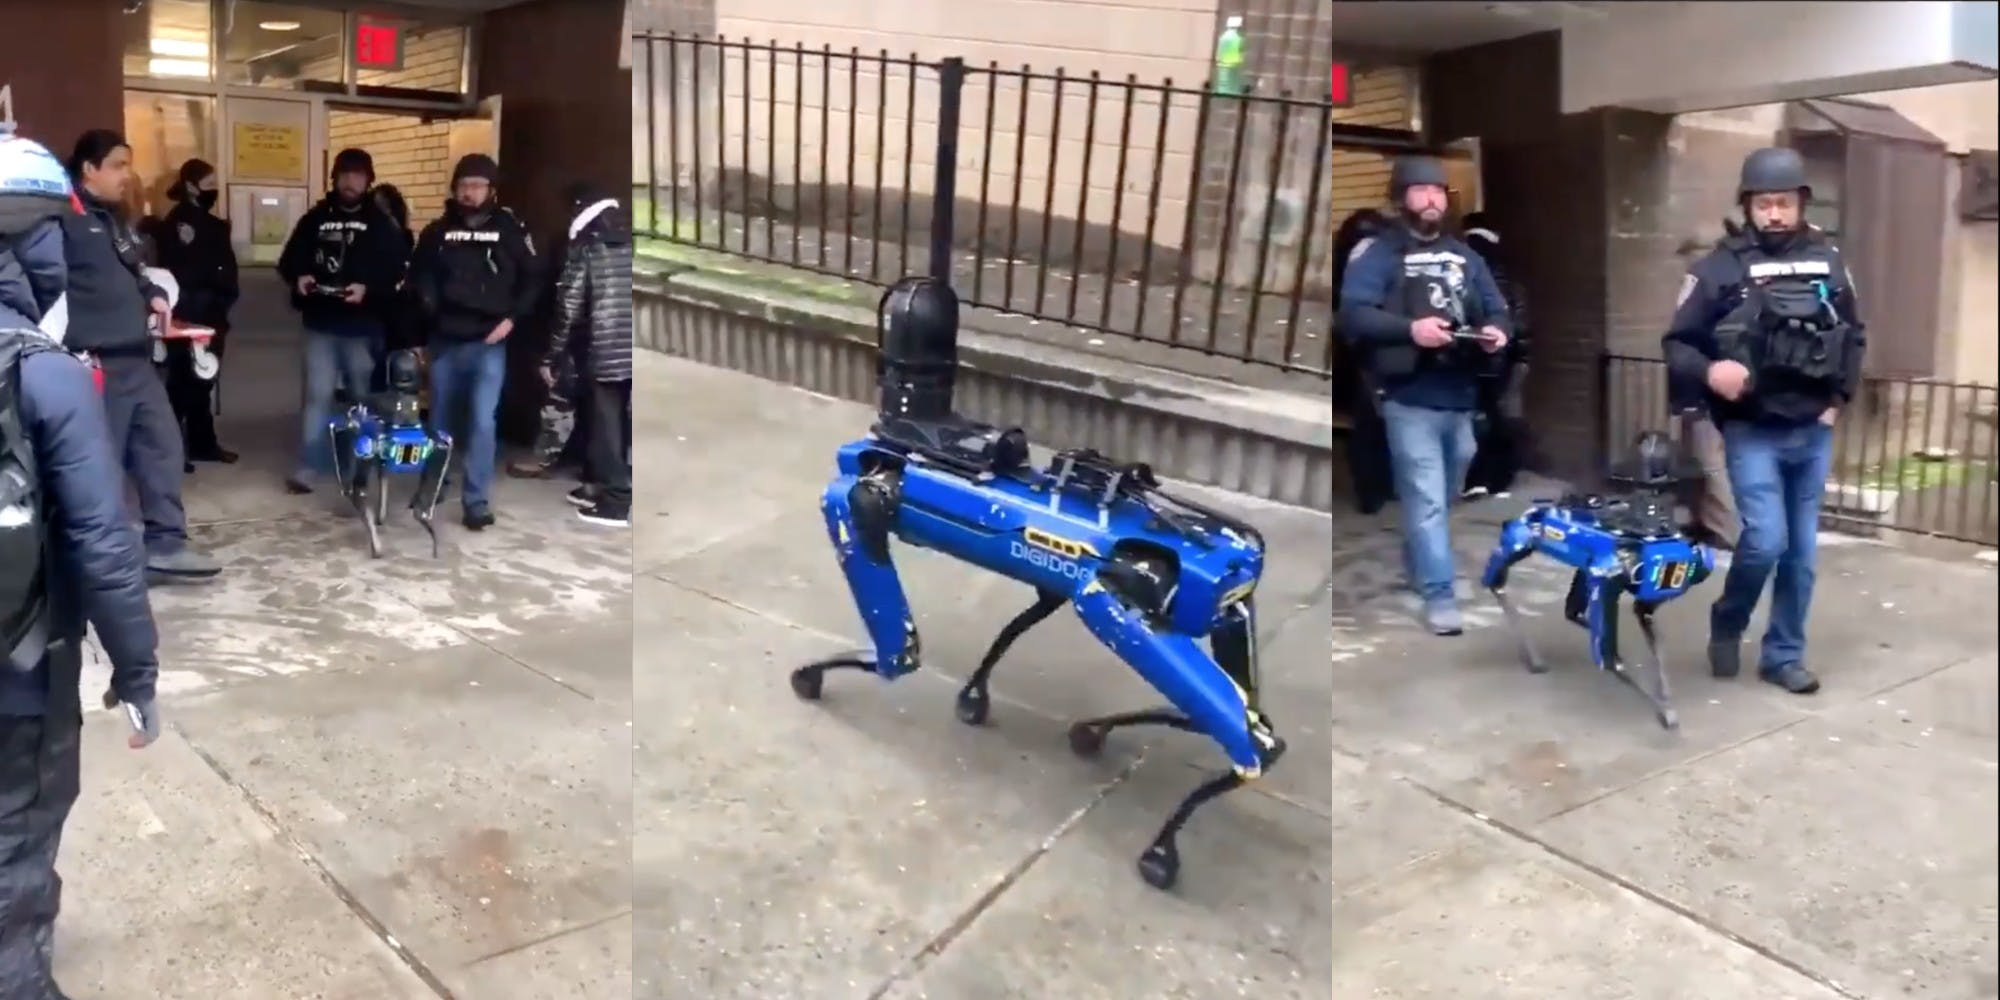 A Spot robot being used by the NYPD